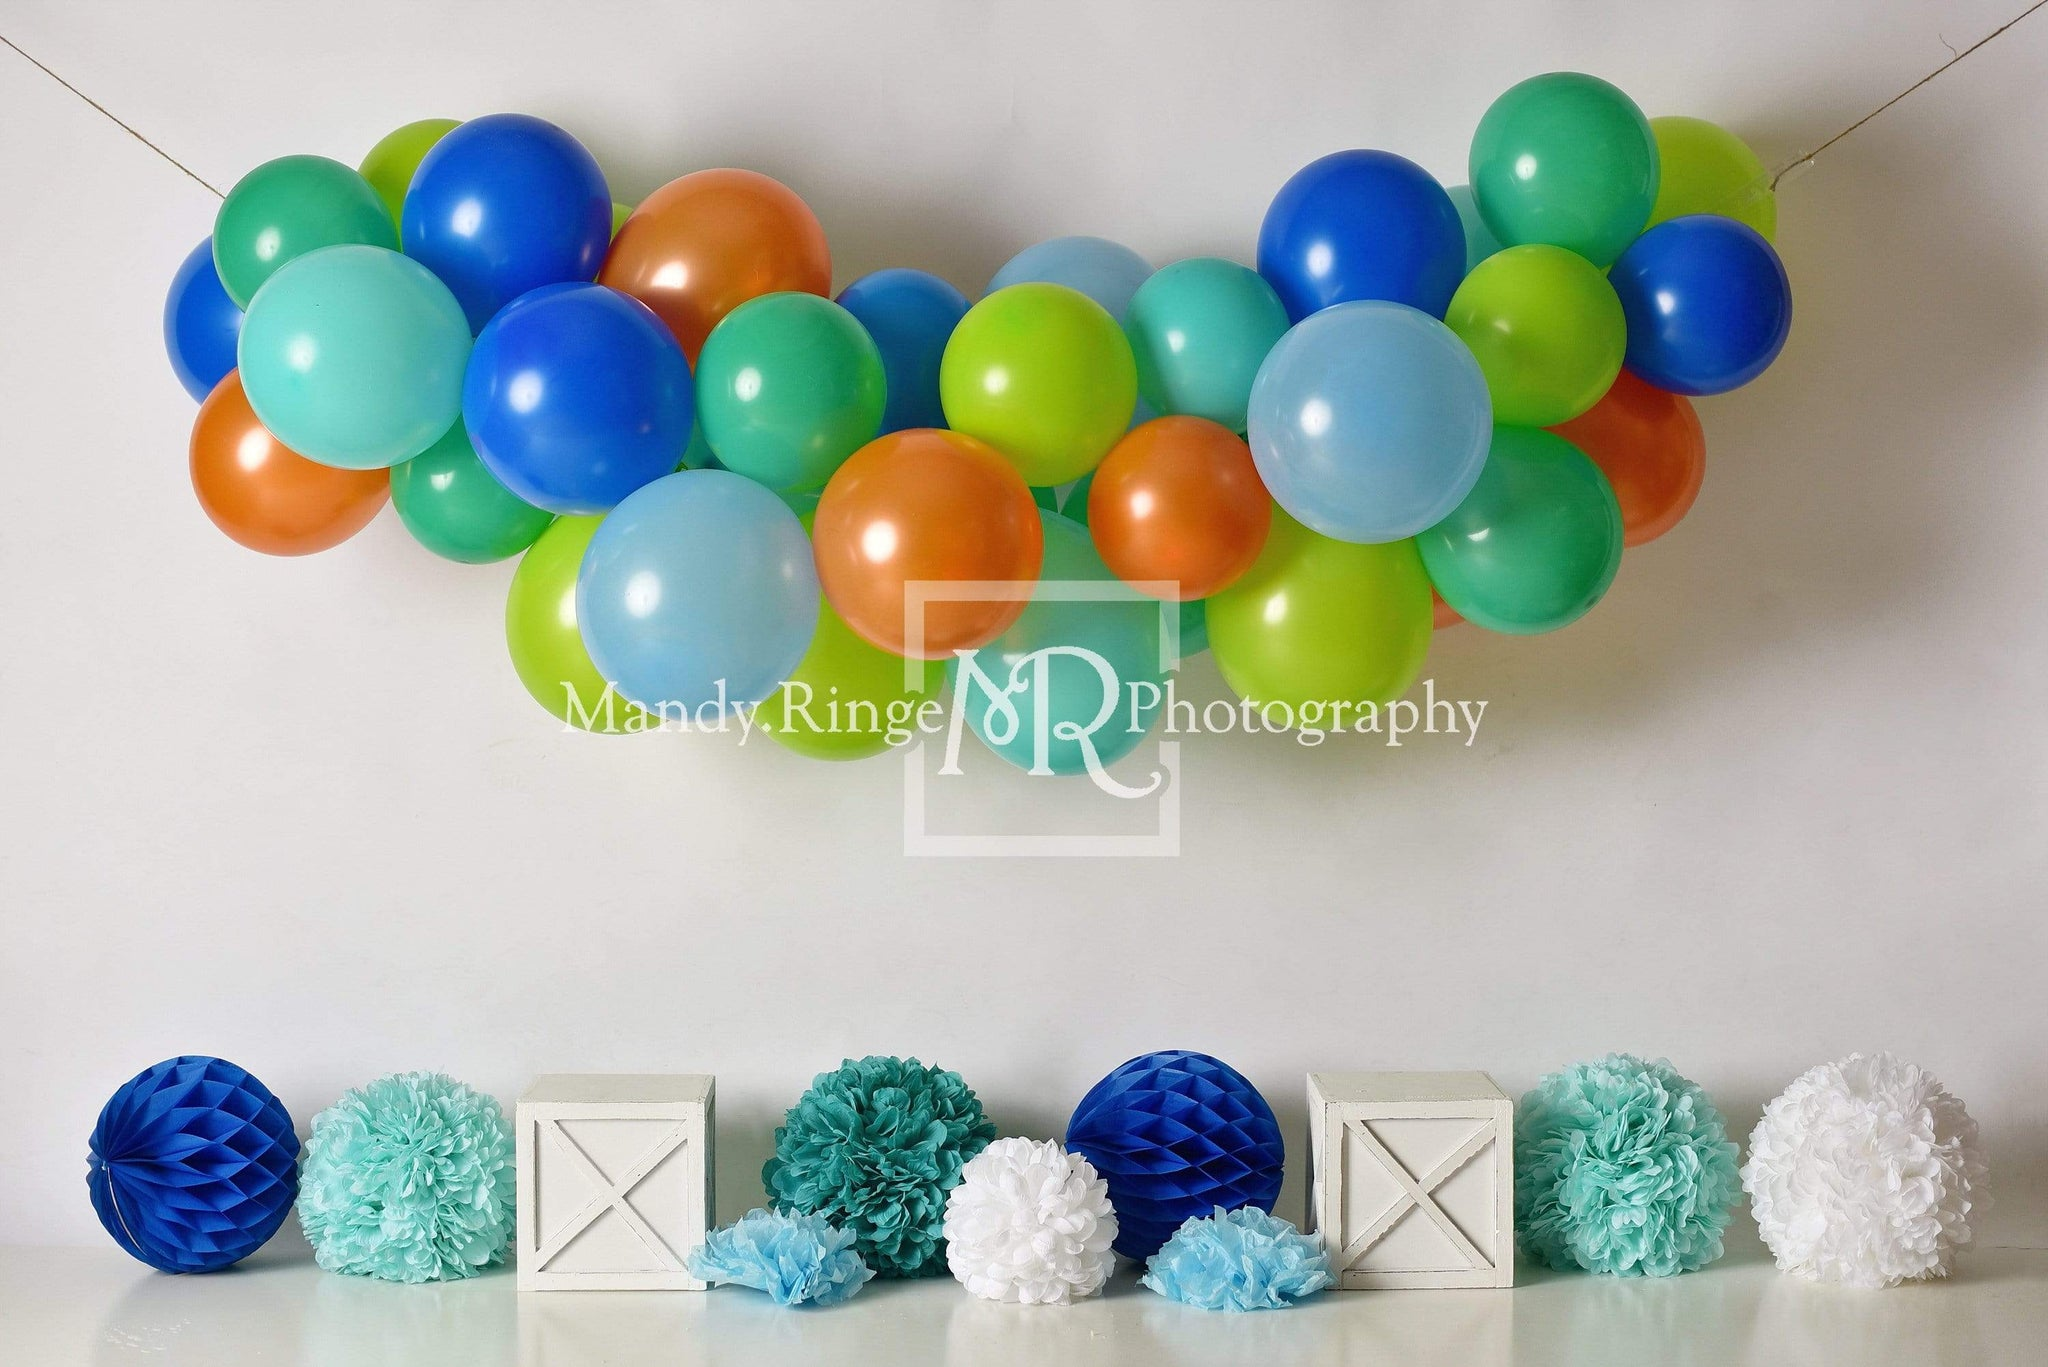 Load image into Gallery viewer, Kate Blue Orange Green Birthday Balloons Backdrop for Photography Designed By Mandy Ringe Photography